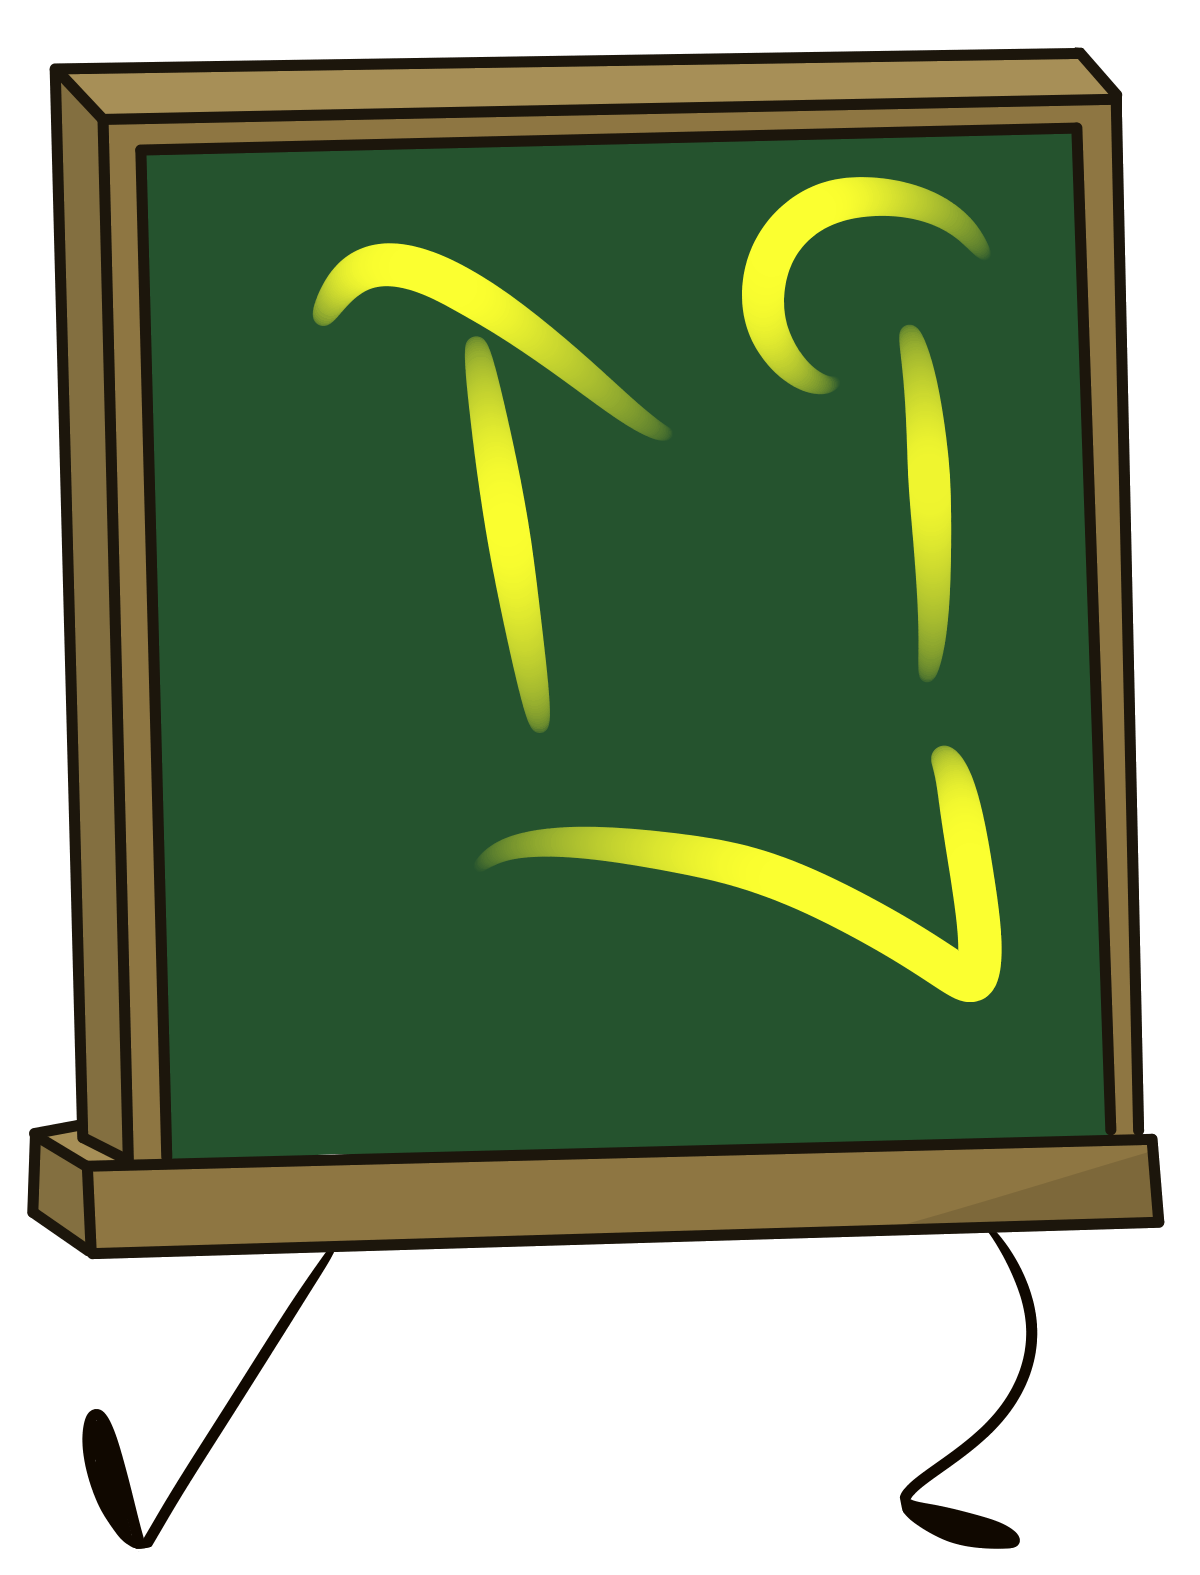 Pencil clipart chalkboard. Image png battle for